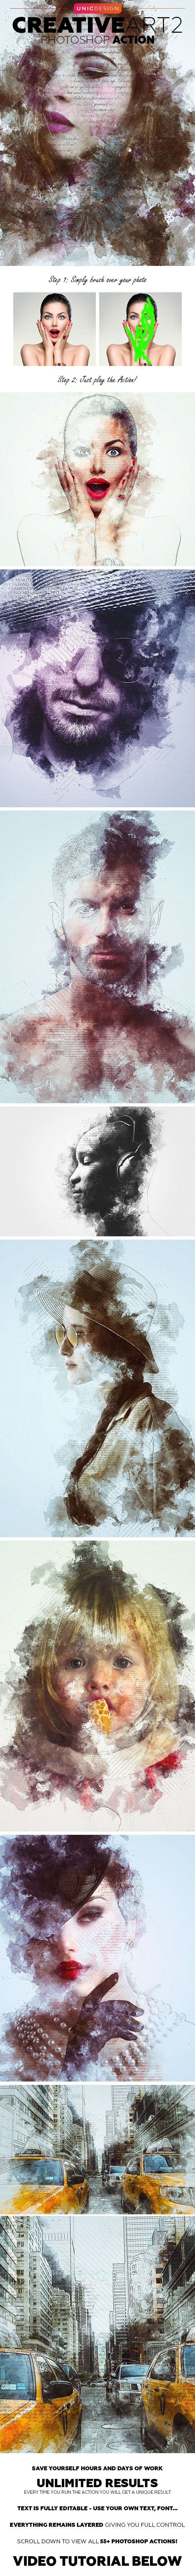 CreativeArt 2 Photoshop Action - Photo Effects Actions